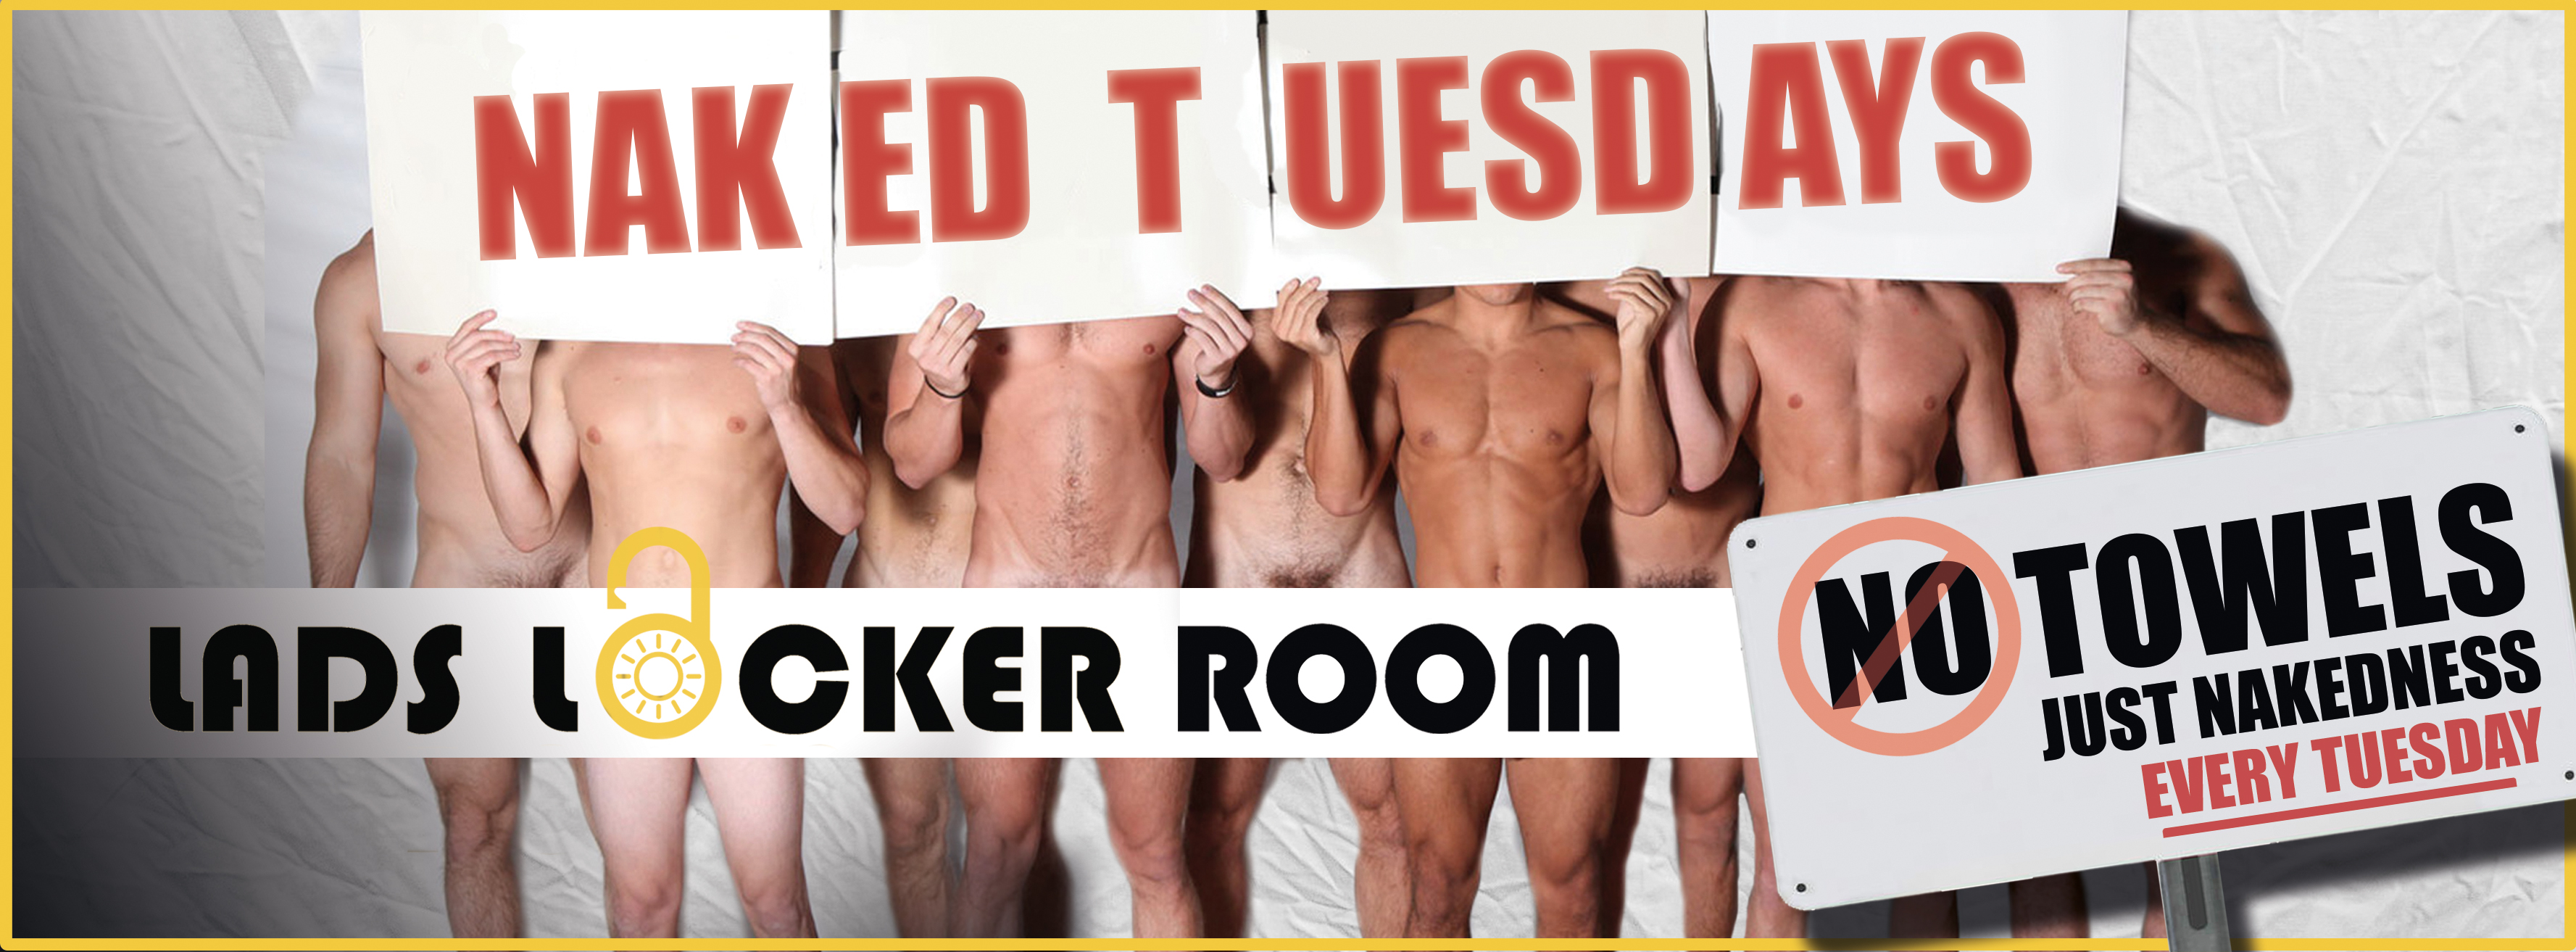 lads locker room